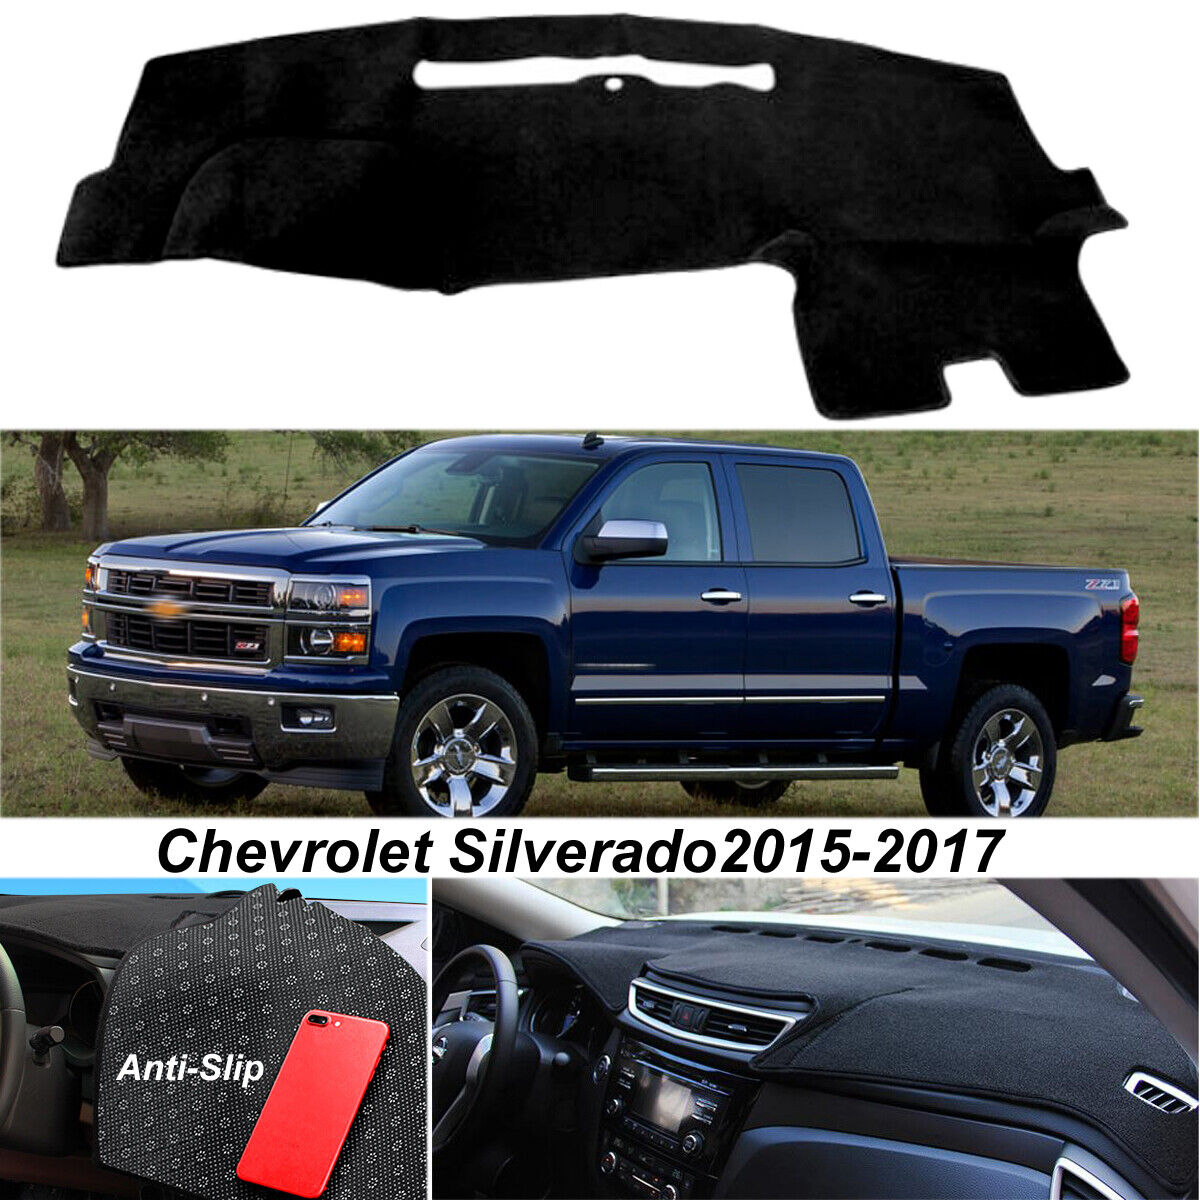 Details About Dash Mat Cover For 2017 Chevrolet Silverado Dashboard Non Slip Pad Black